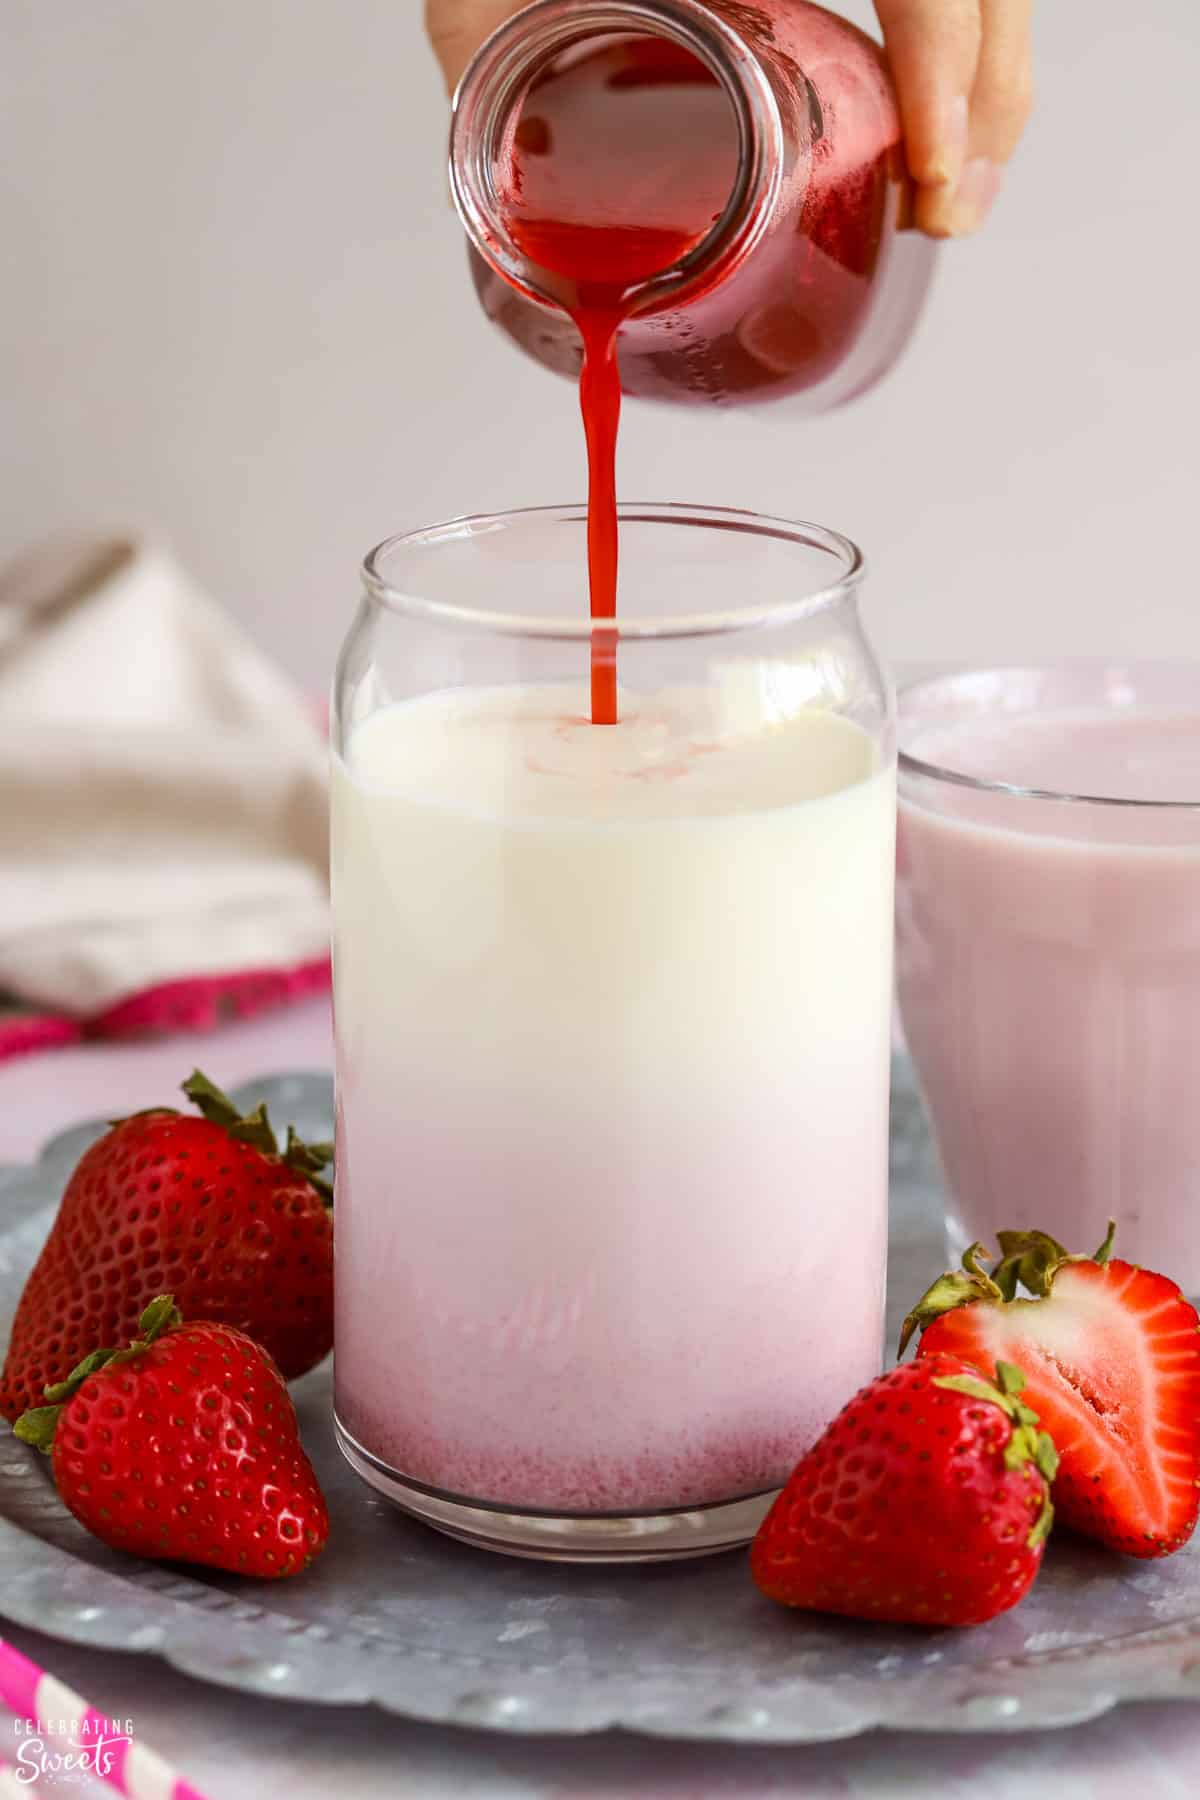 Strawberry syrup being poured into a glass of milk.